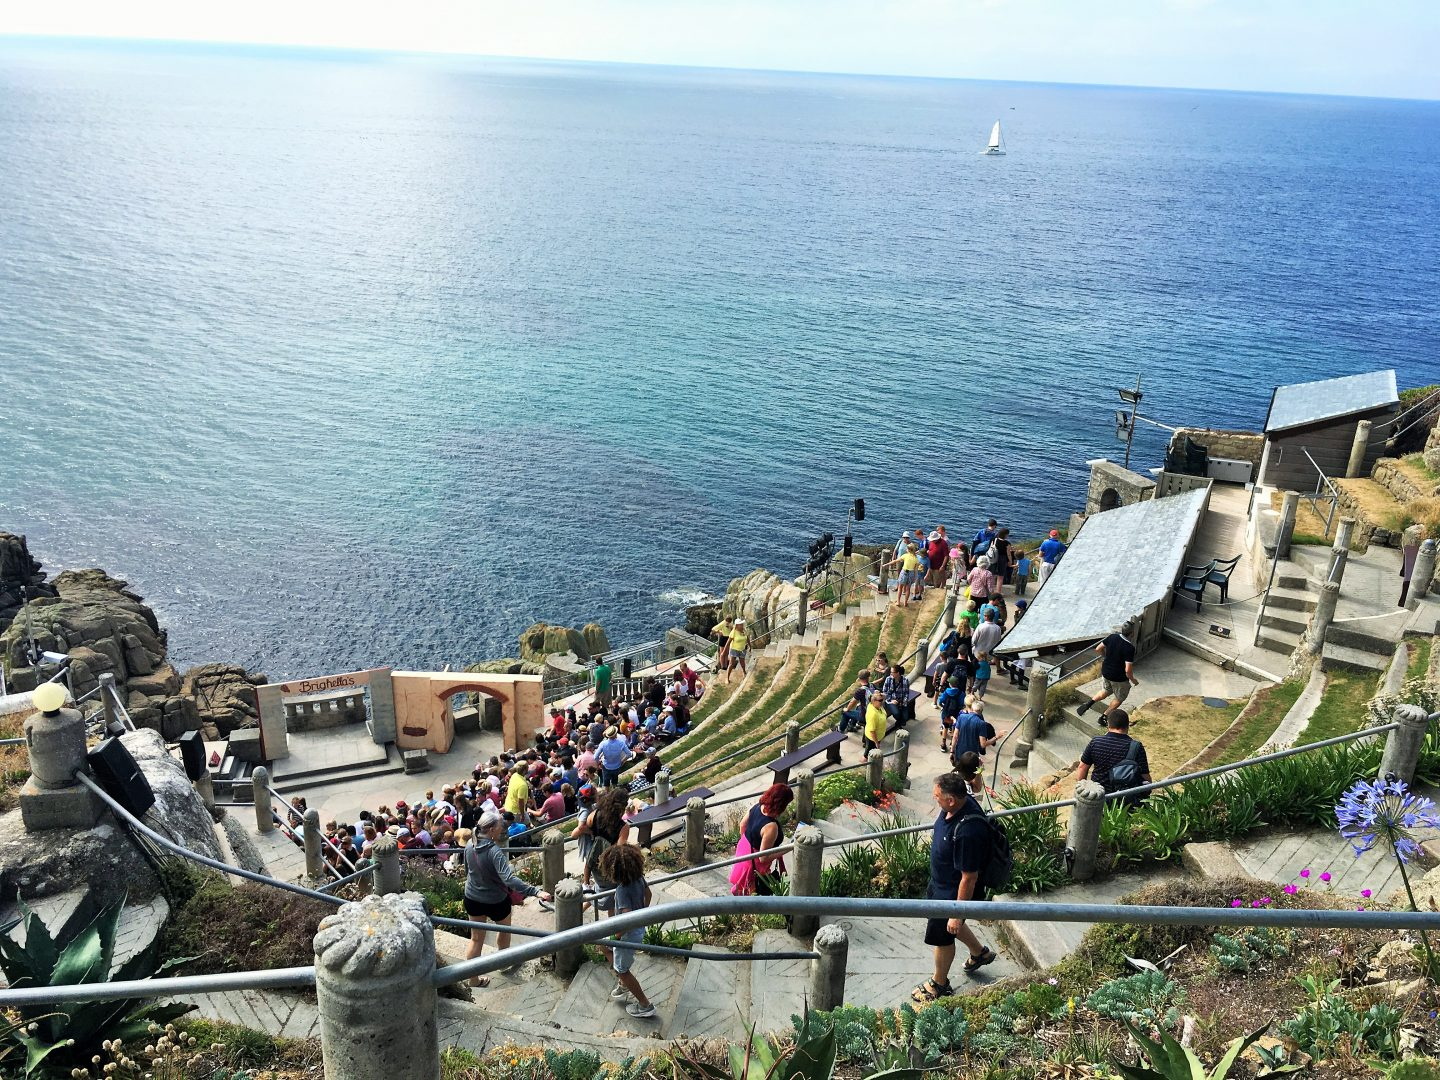 The mesmerising view of the Atlantic Ocean from the Minack Theatre